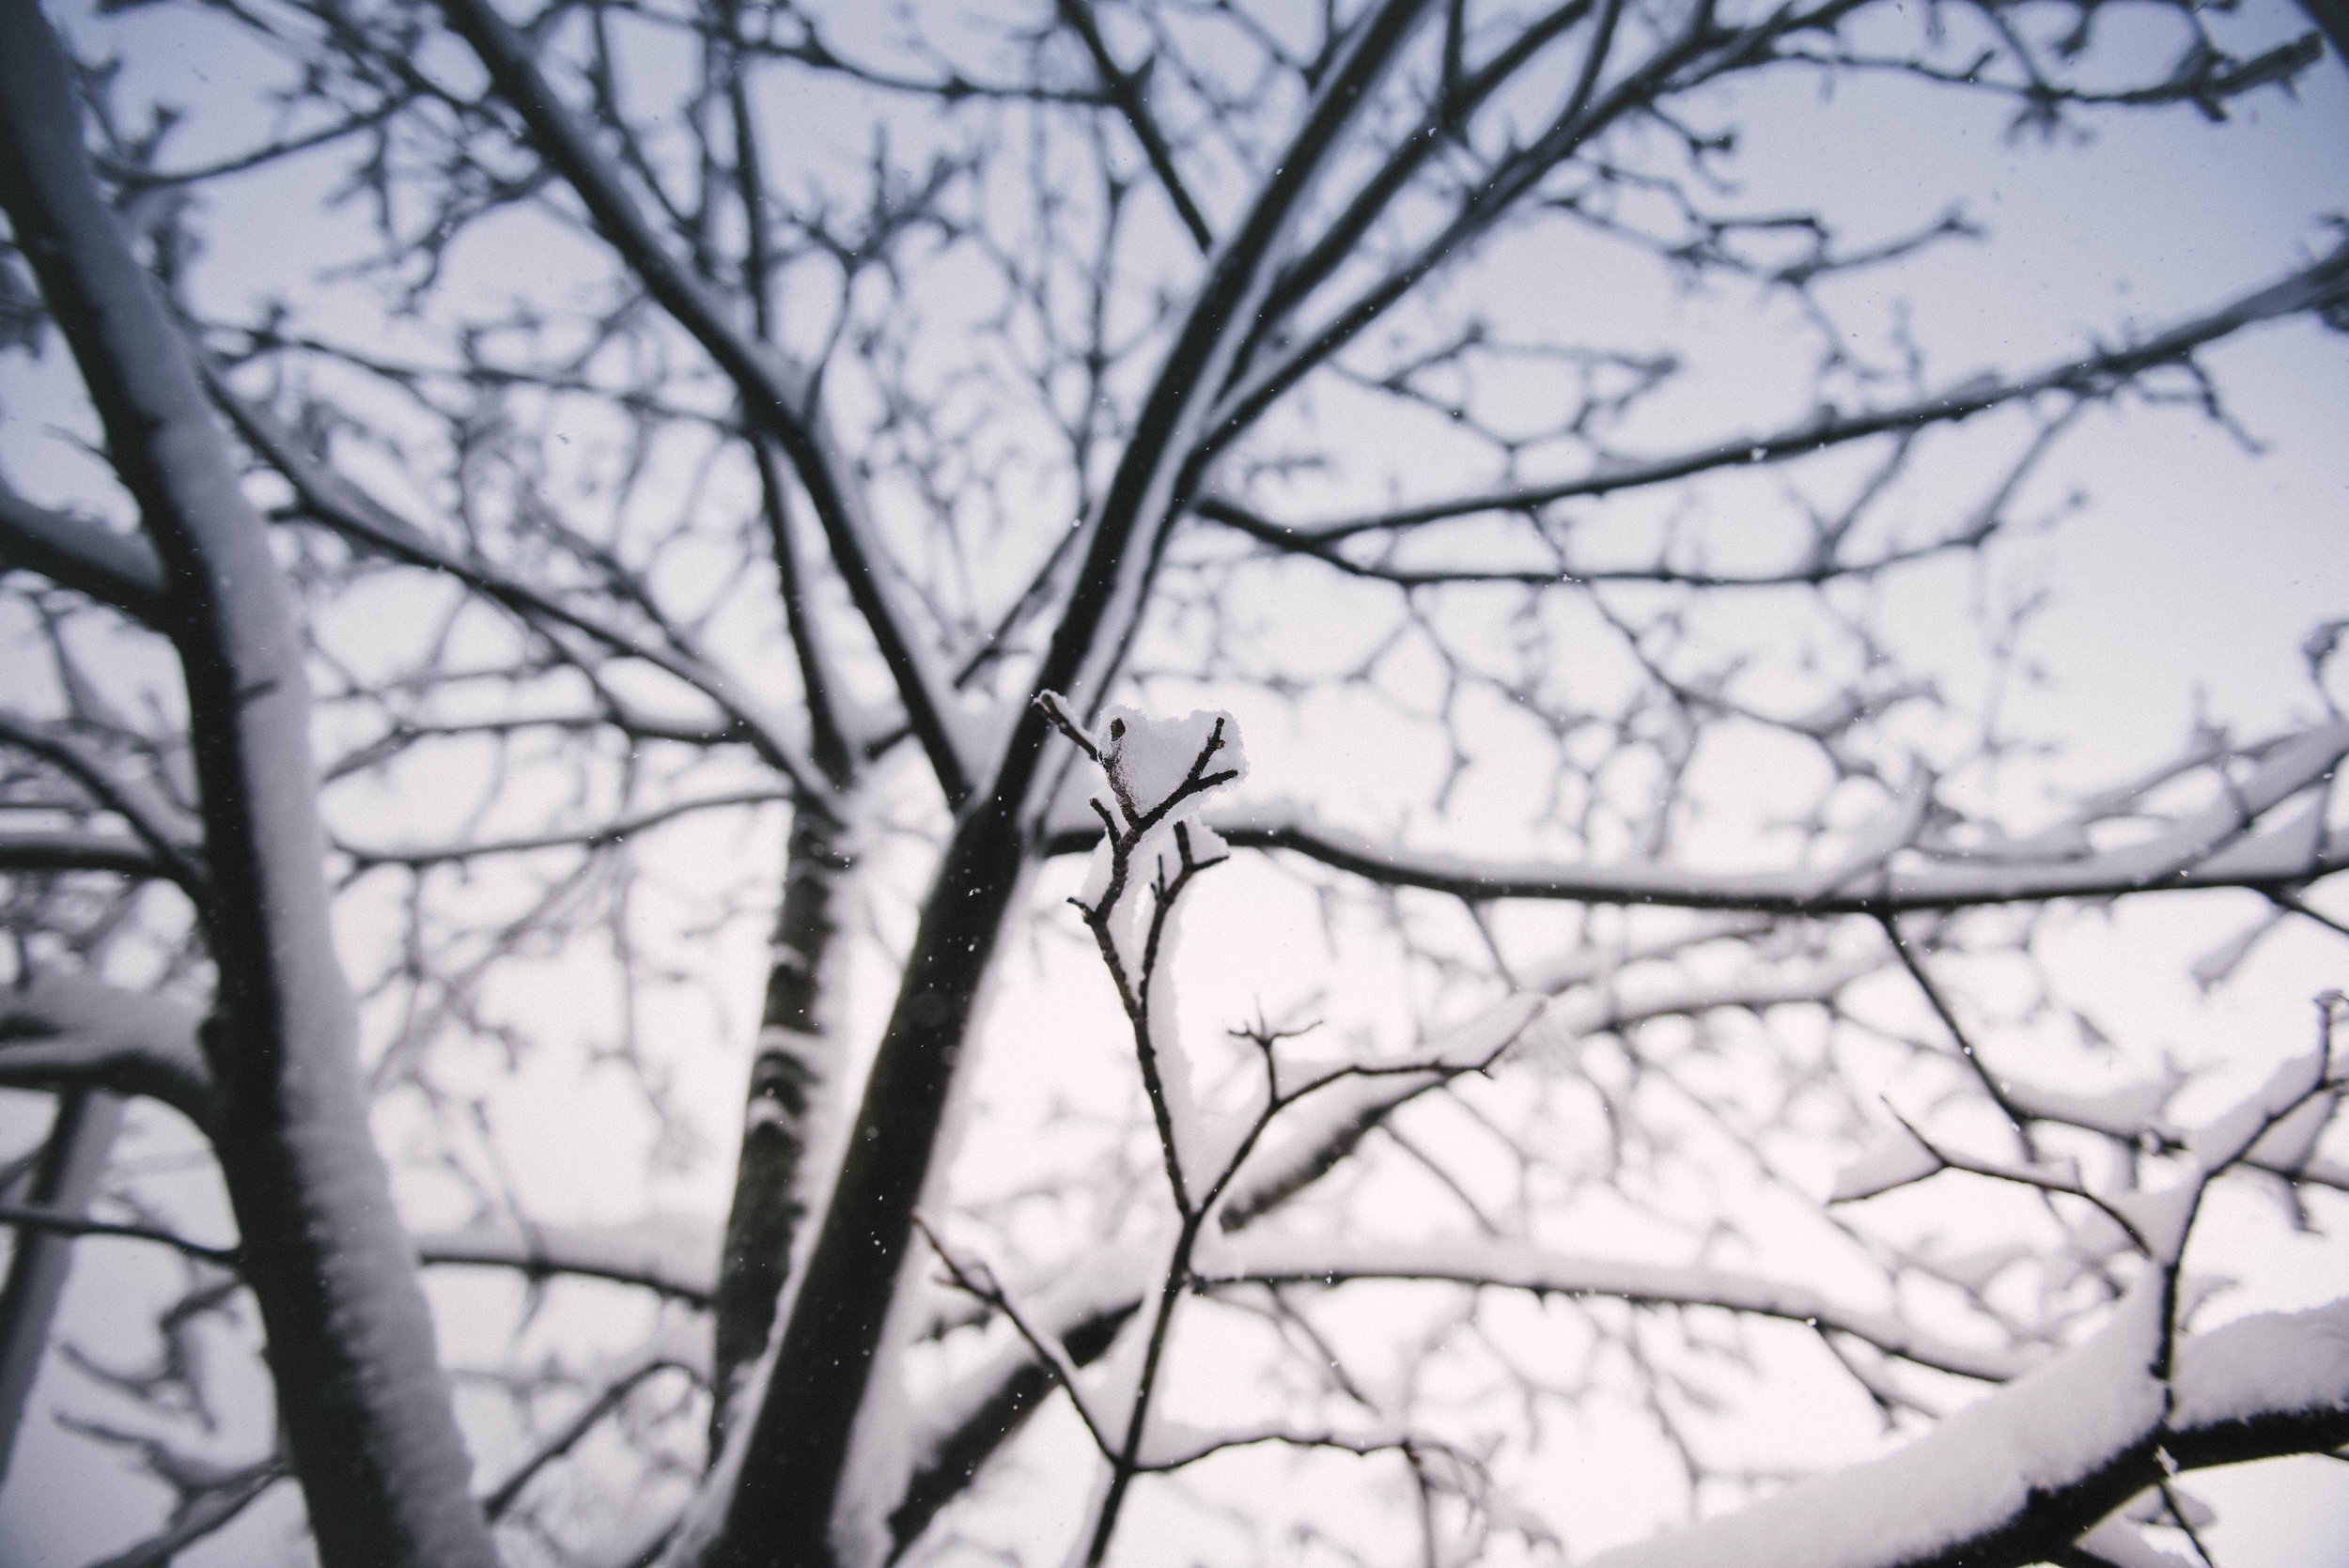 Trim branches before strong winds or ice do damage to surrounding structures.